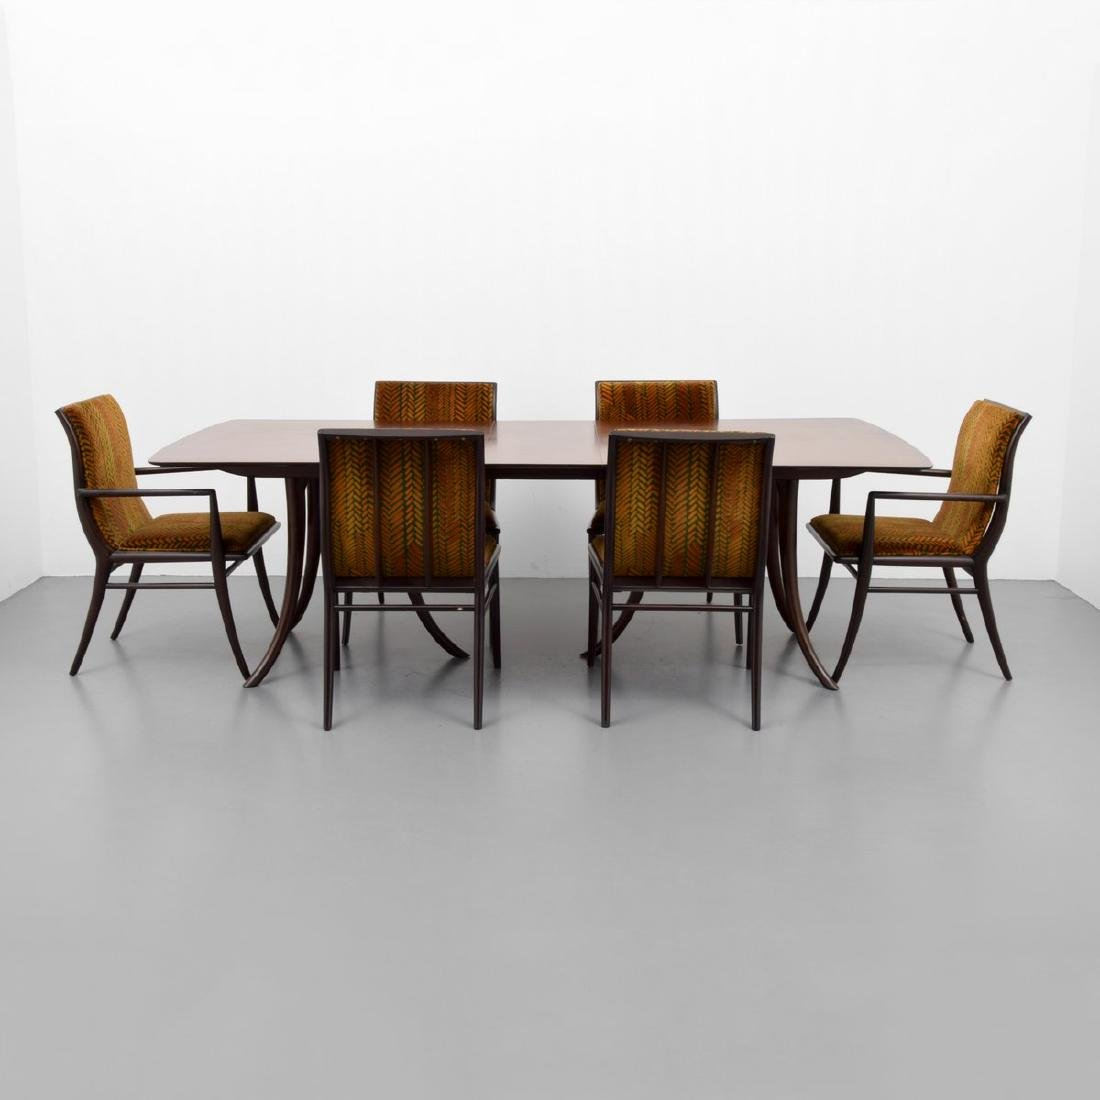 T.H. Robsjohn-Gibbings Dining Table & 6 Chairs